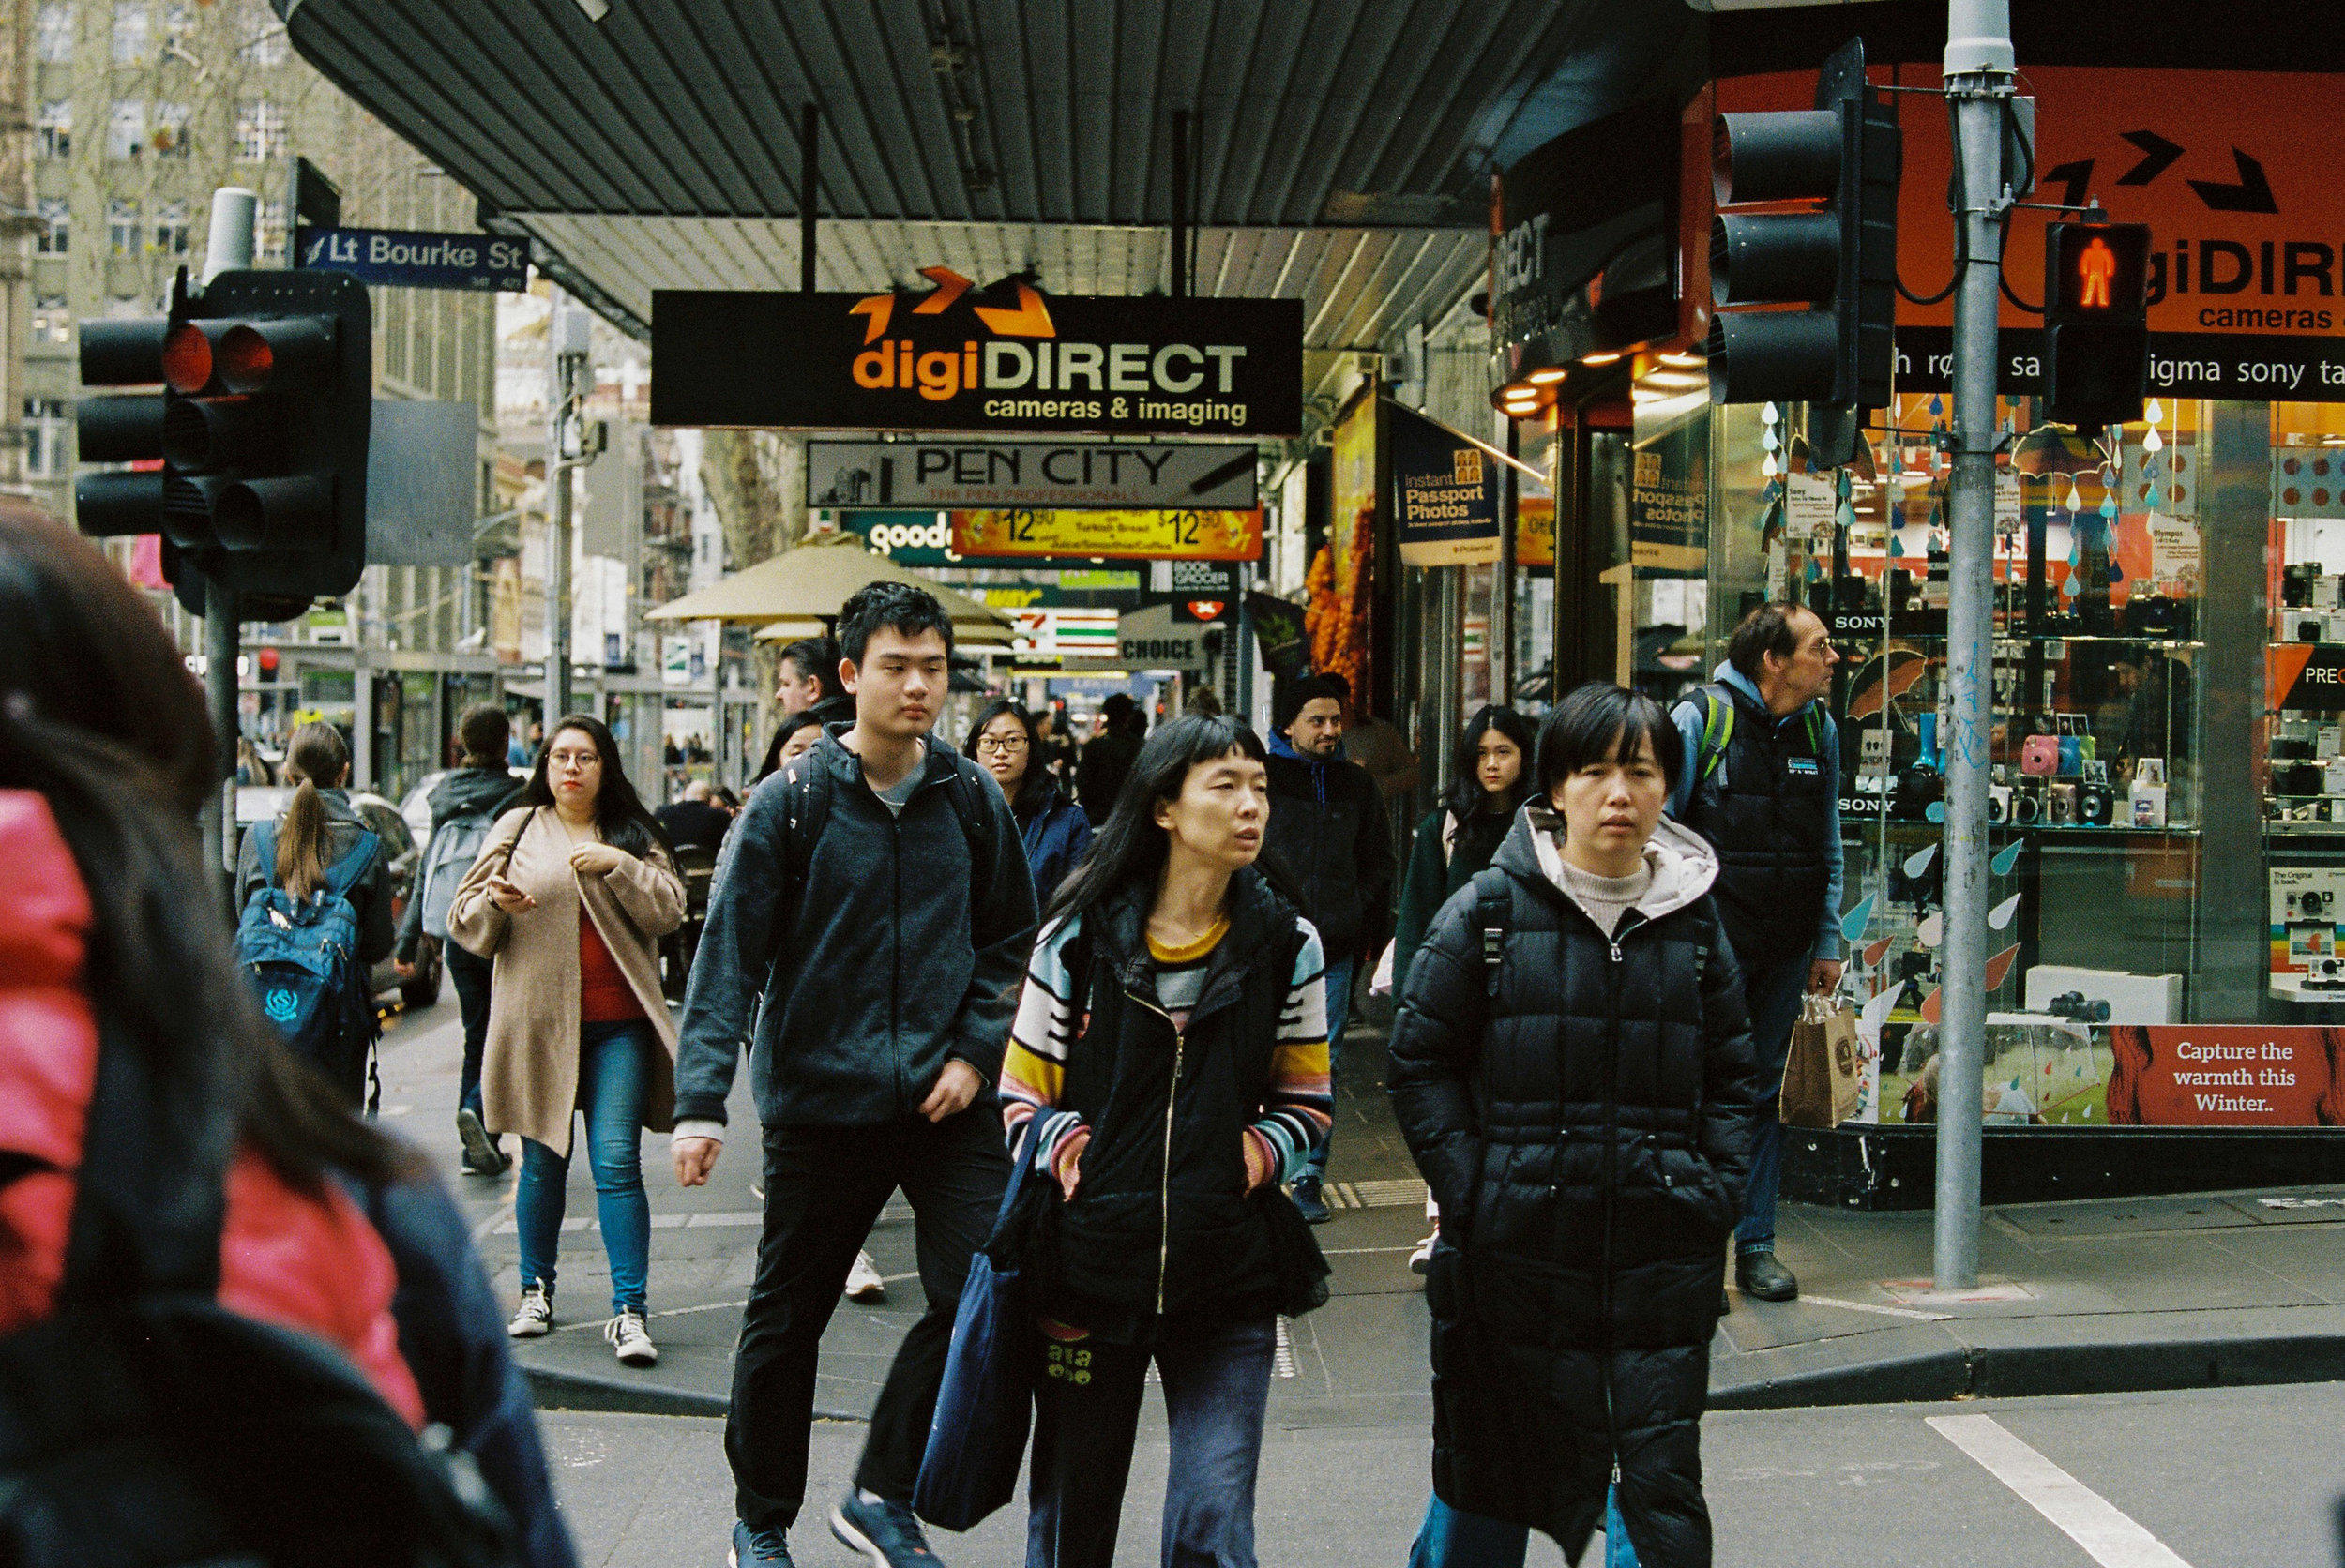 Cnr Swanston and Little Bourke Street Melbourne.jpg